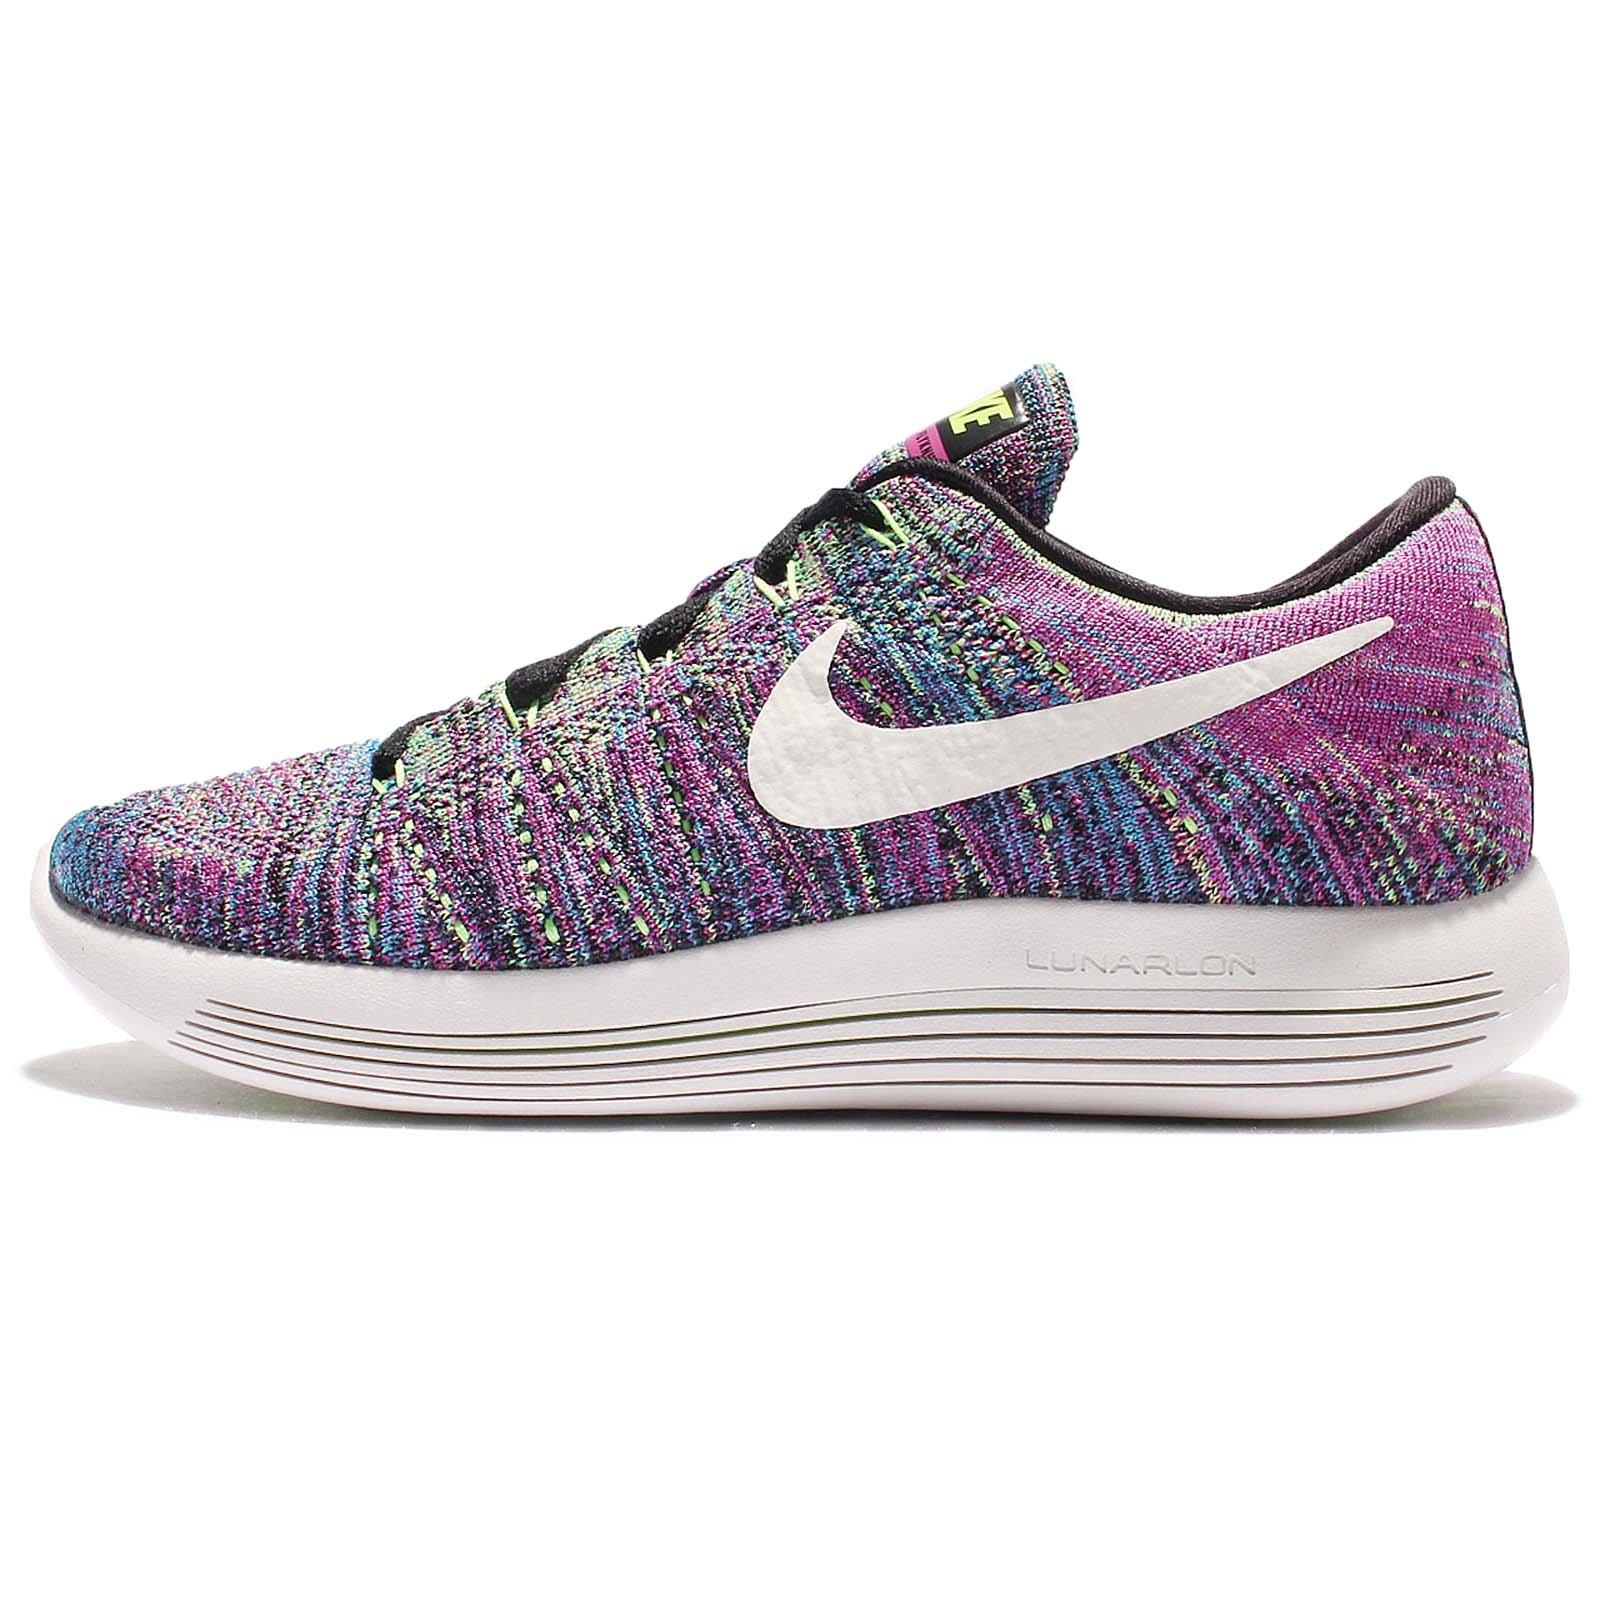 wholesale dealer 62c9a 4772f Galleon - Nike Womens LunarEpic Low Flyknit Running Shoe Black Summit White Fire  Pink Blue Glow Ghost Green 7